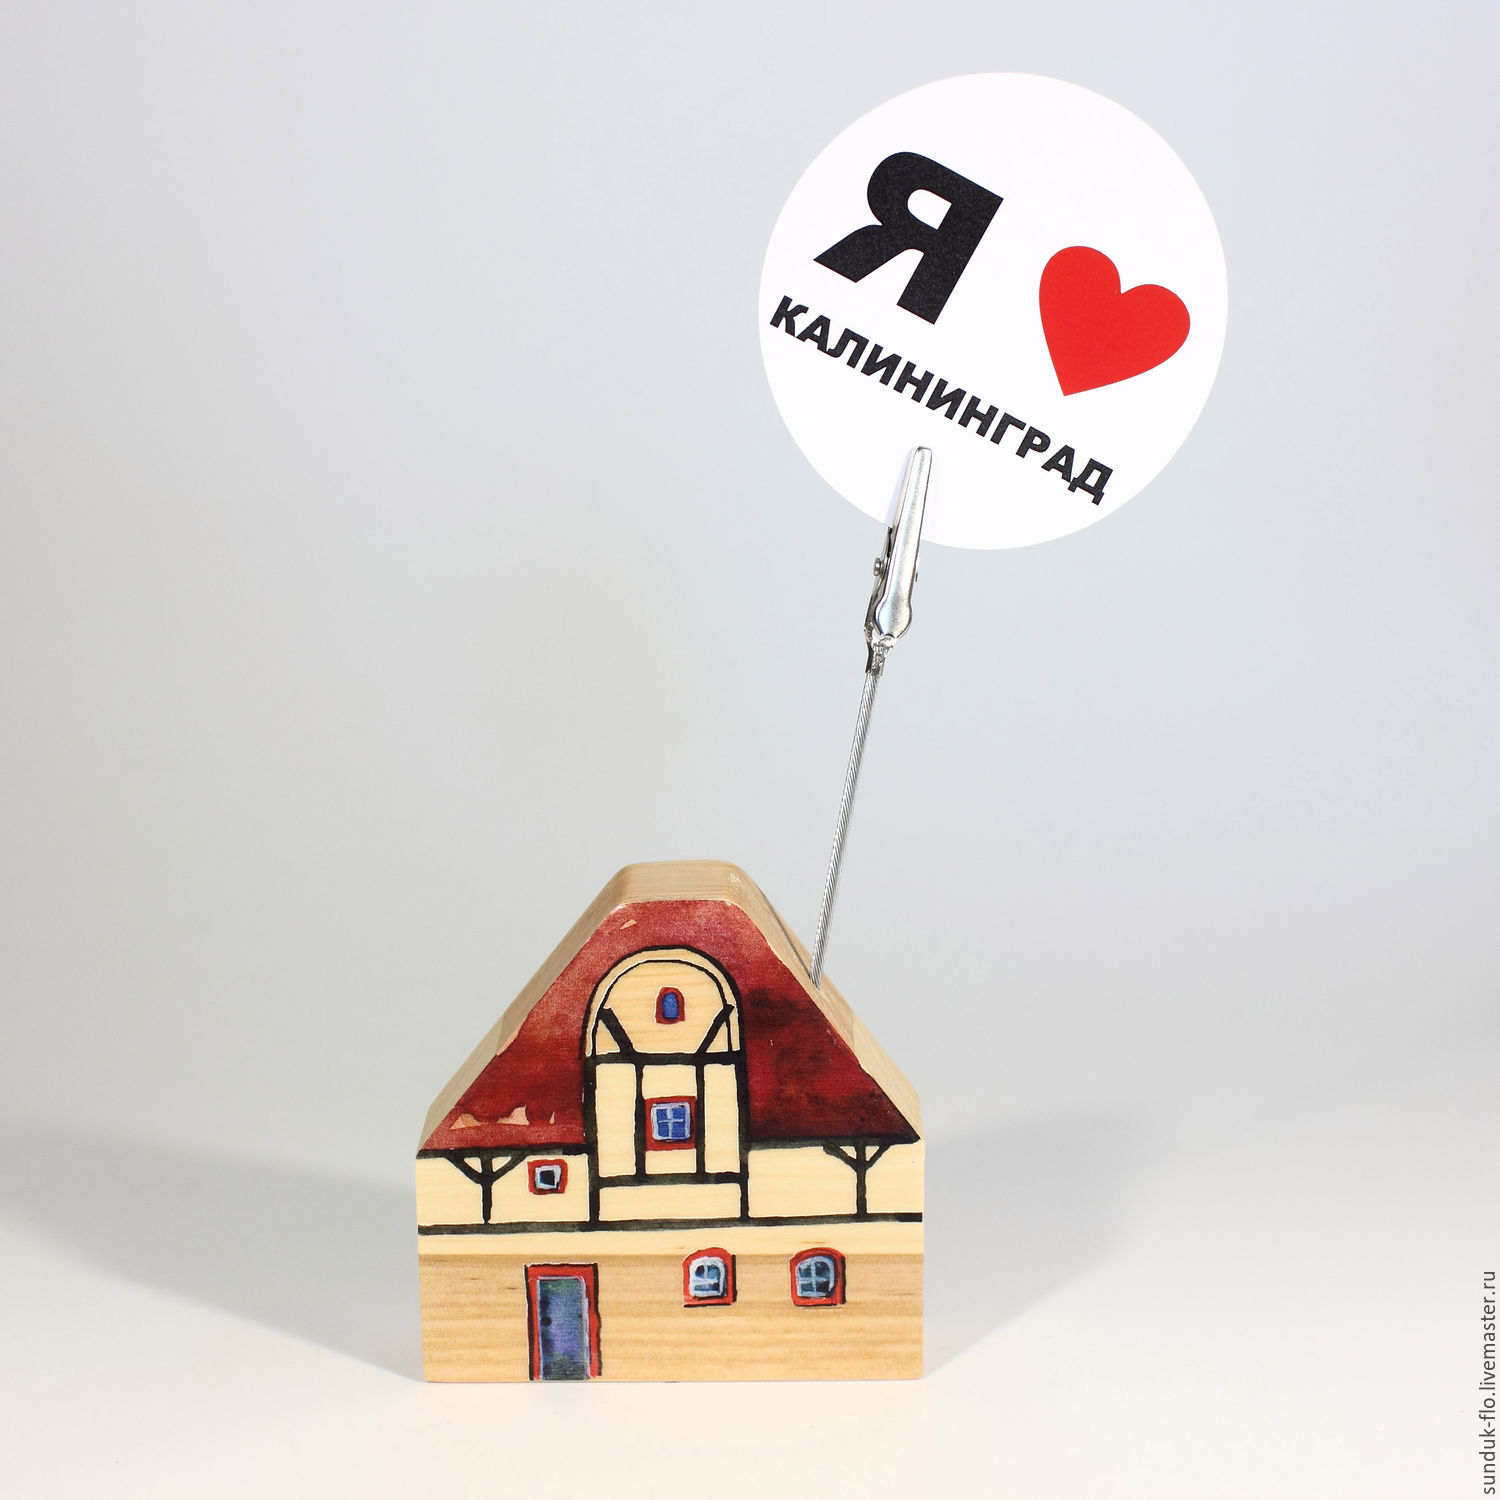 Wooden house with a pin